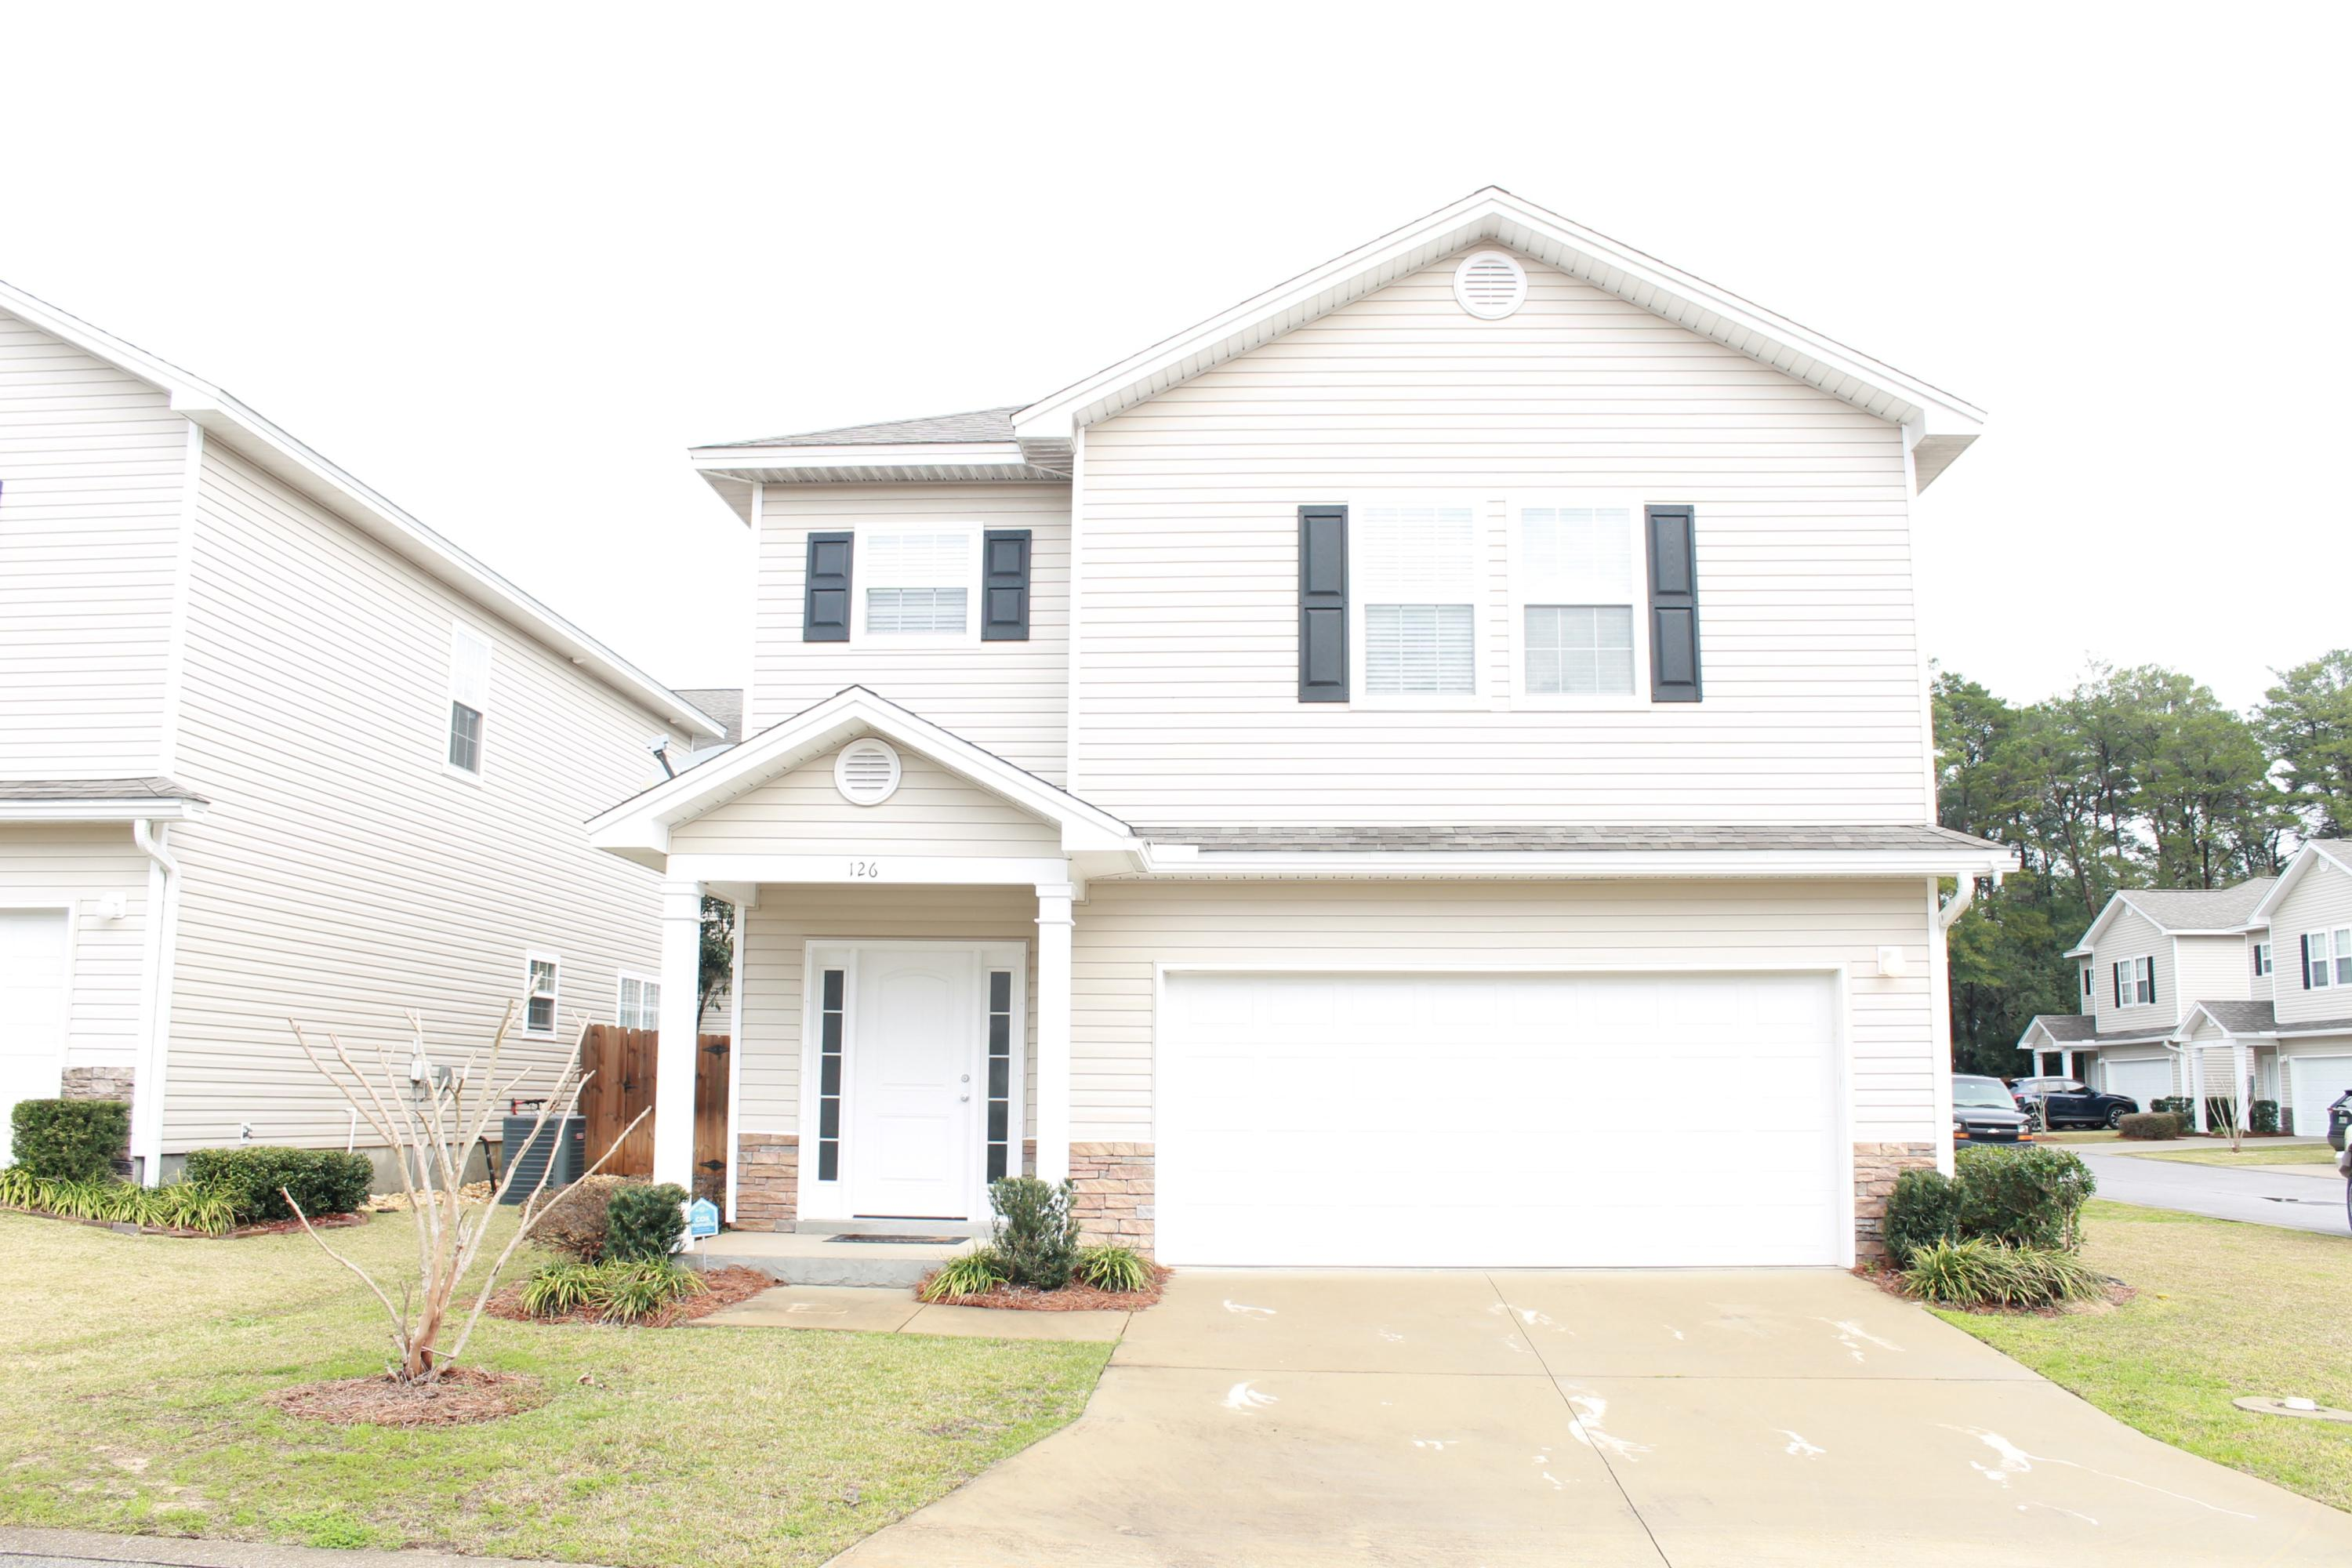 Available for move in on April 3.Located in the heart of Niceville, you will love occupying this new